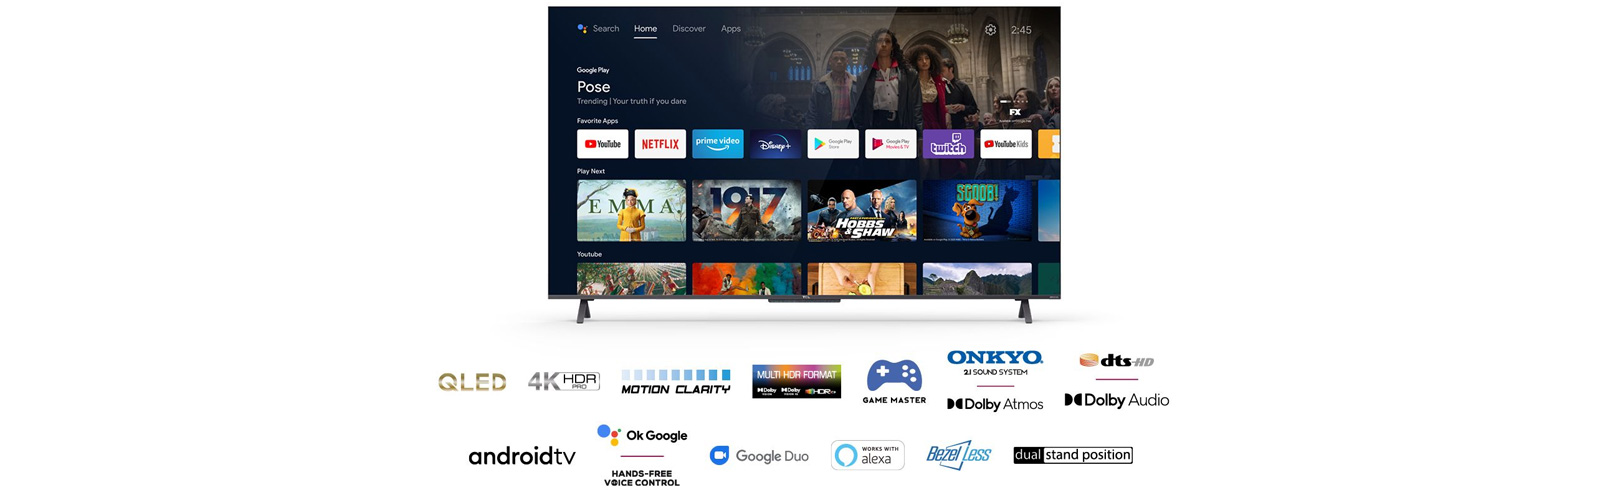 The TCL C725 4K QLED TVs are launched in Europe - specifications, features, prices